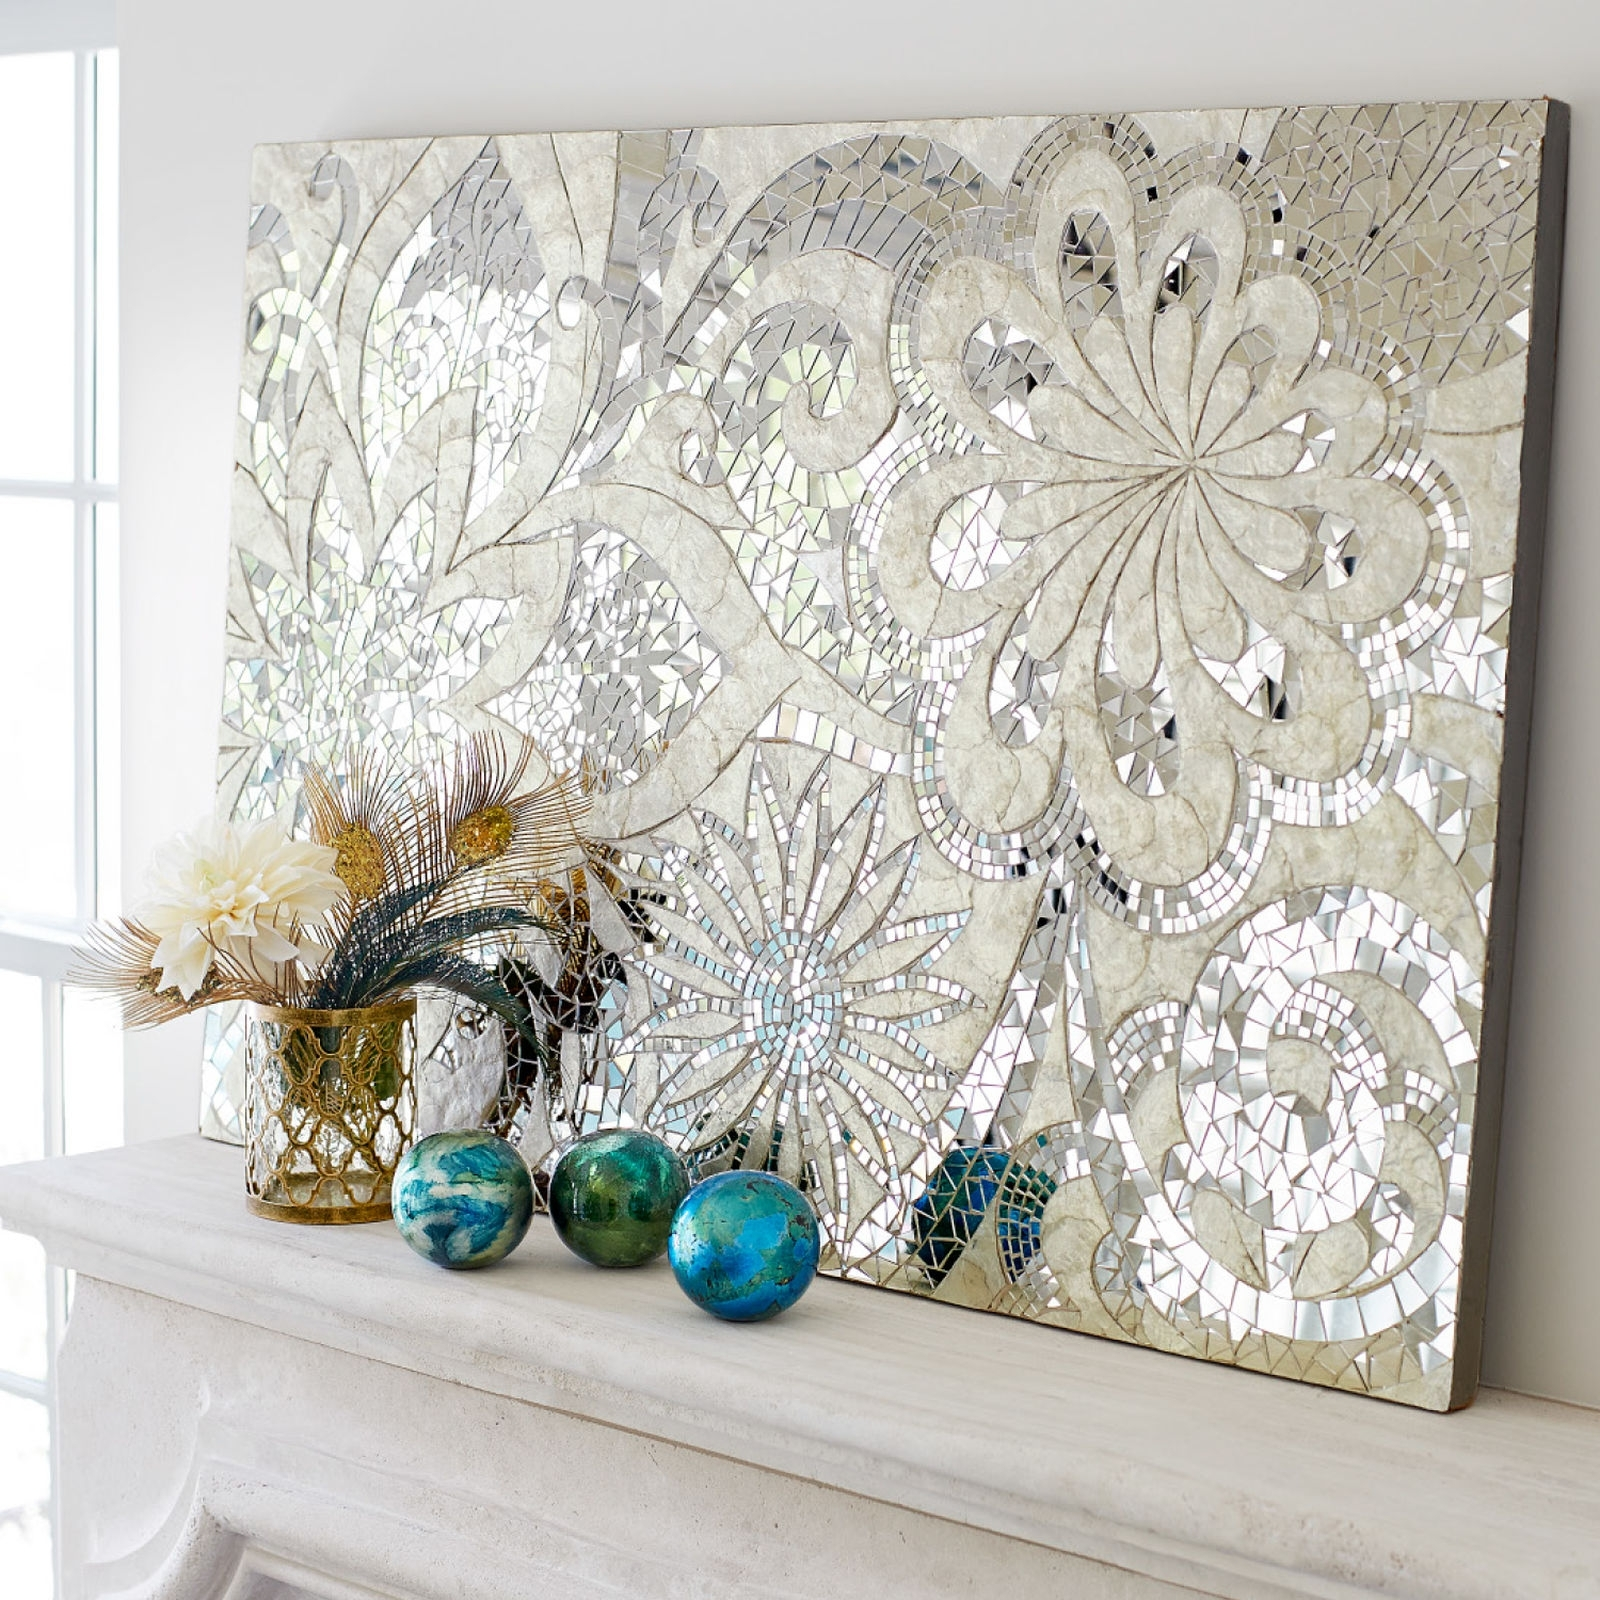 Mirror Tiles, Indonesia And Mosaics Throughout Glamorous Mother Of Pearl Wall Art (View 10 of 15)